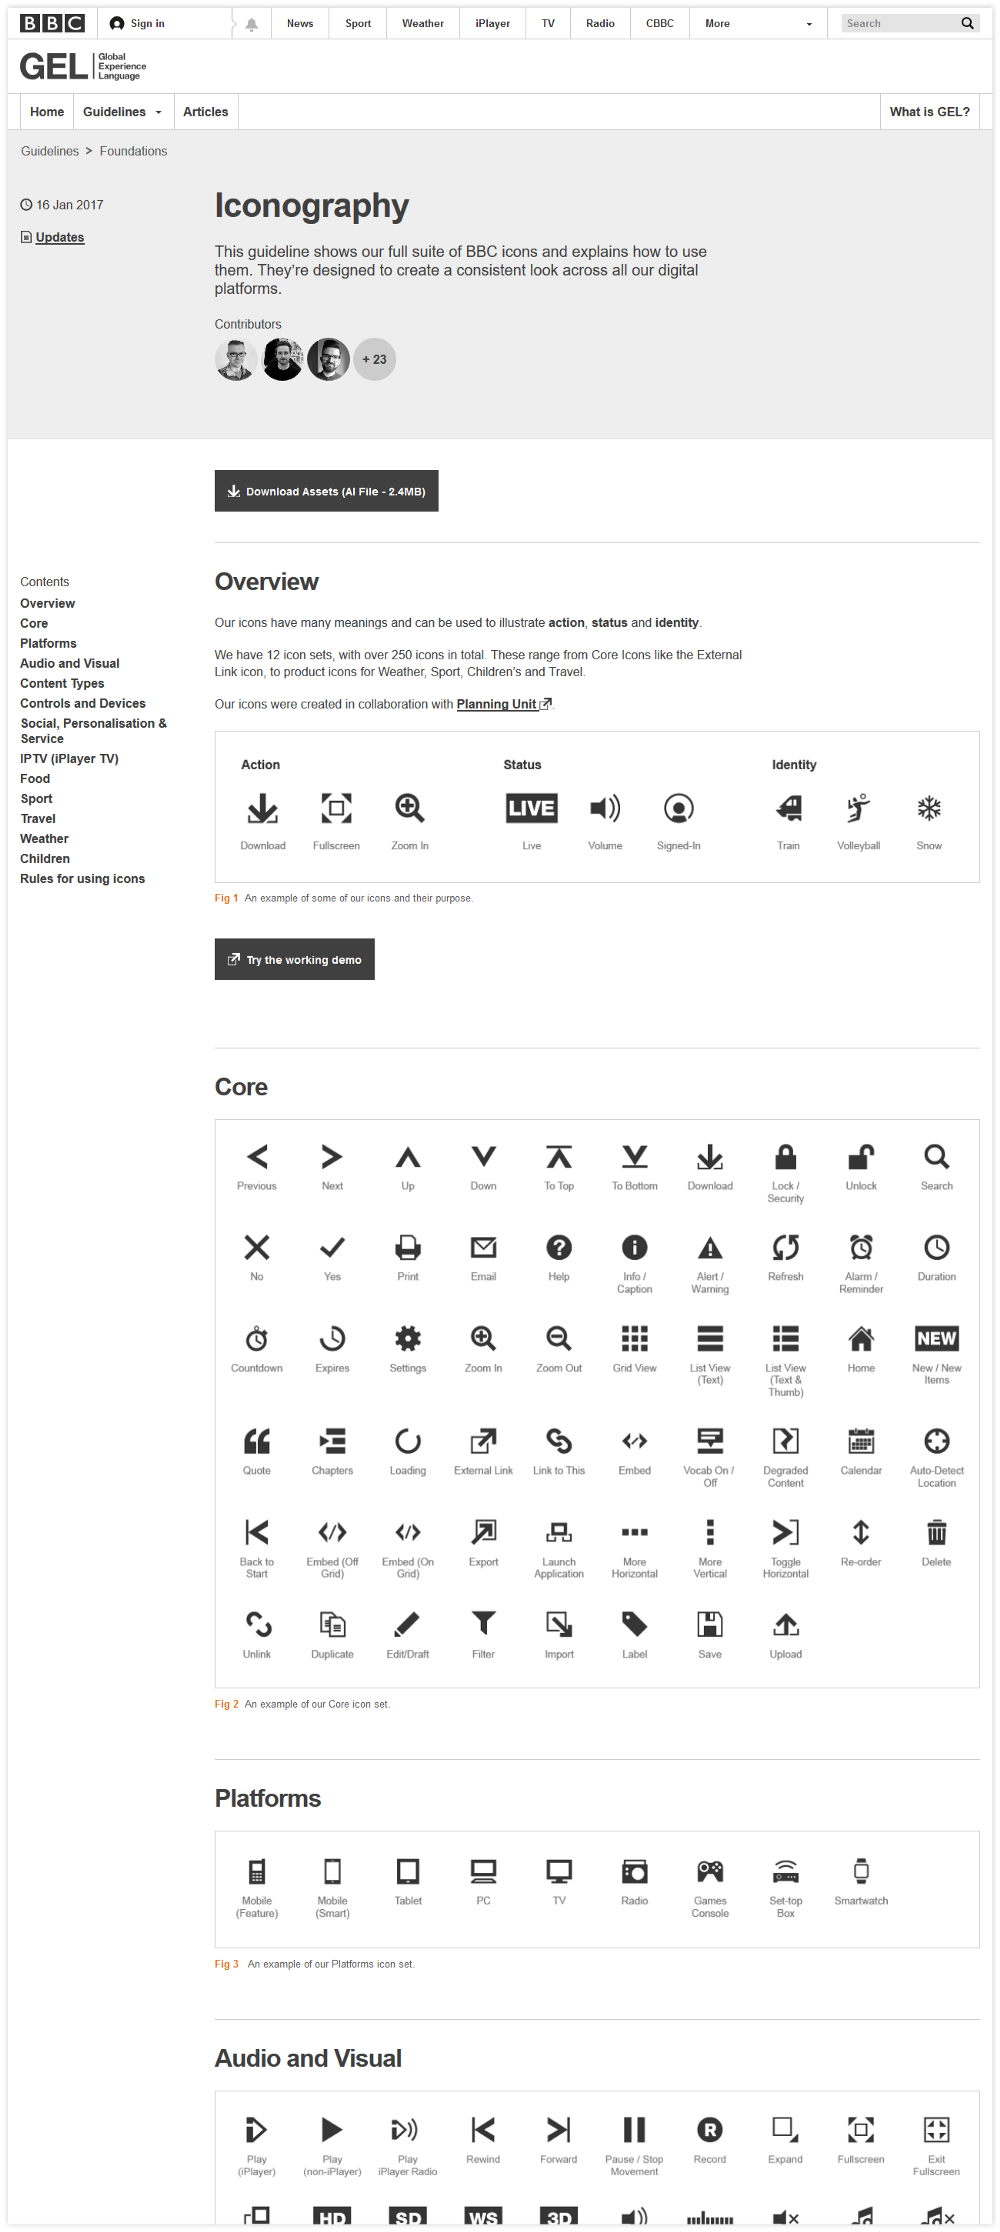 codeblick DigitalerStyleguide Iconography